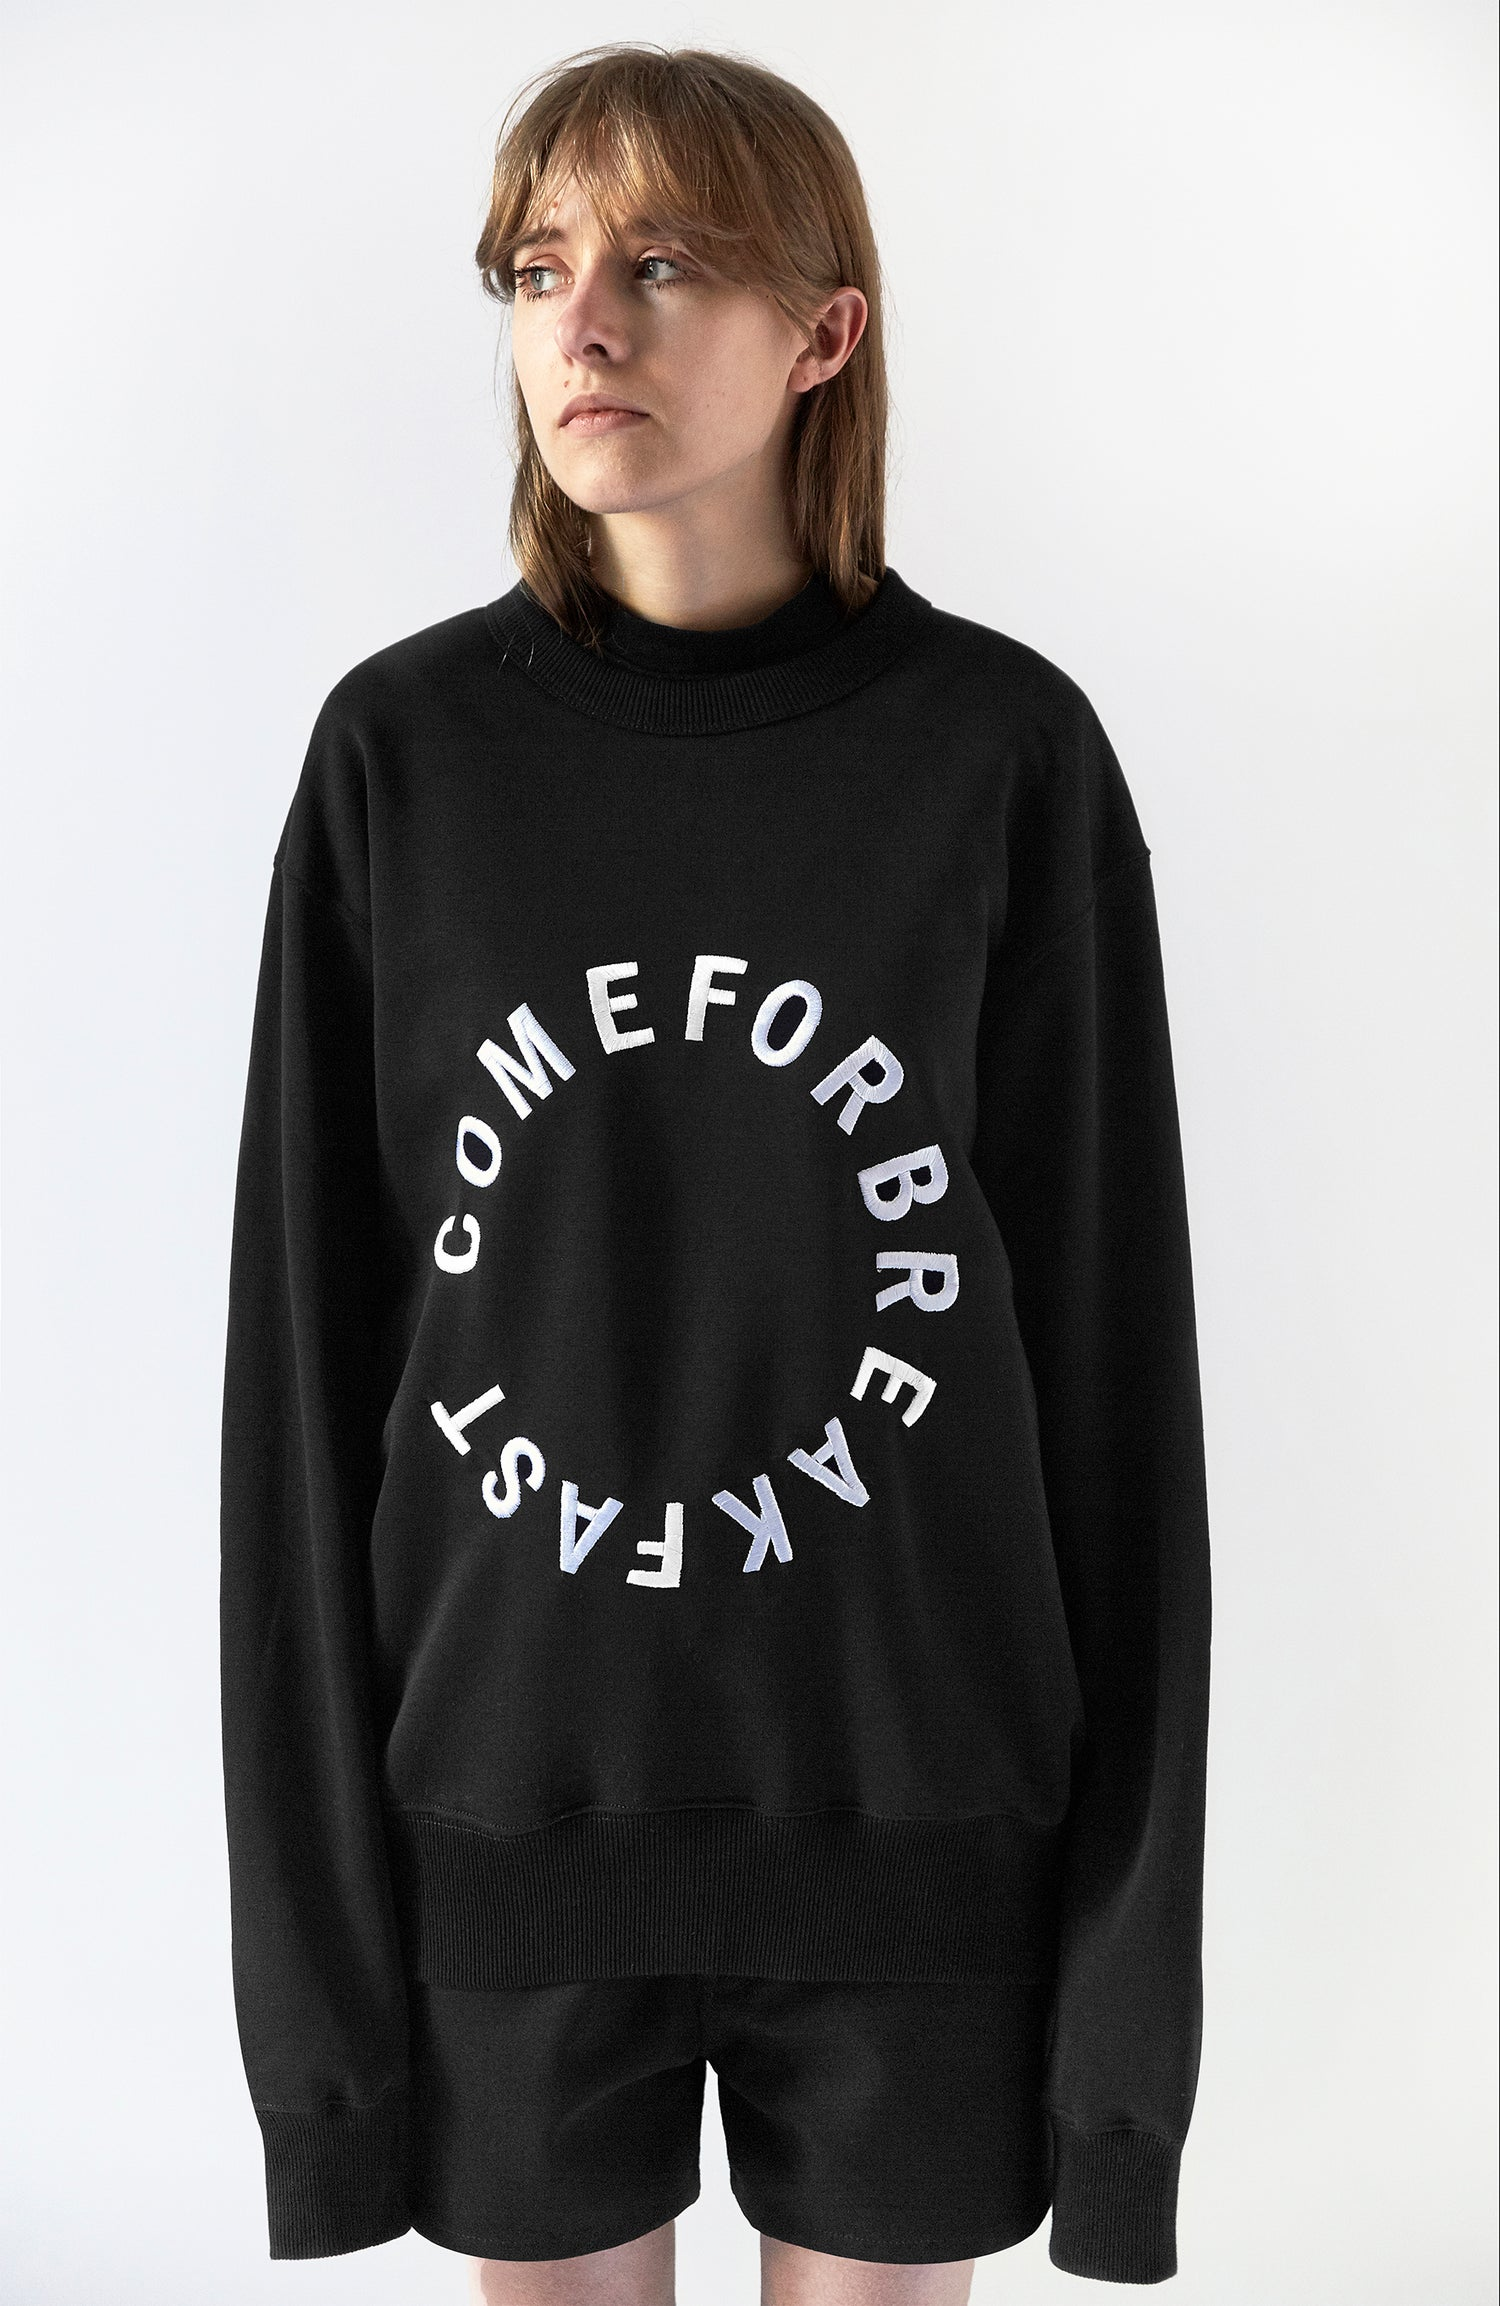 Image of SWEATSHIRT WITH WHITE EMBROIDERED ROUND COMEFORBREAKFAST LOGO - WOMAN